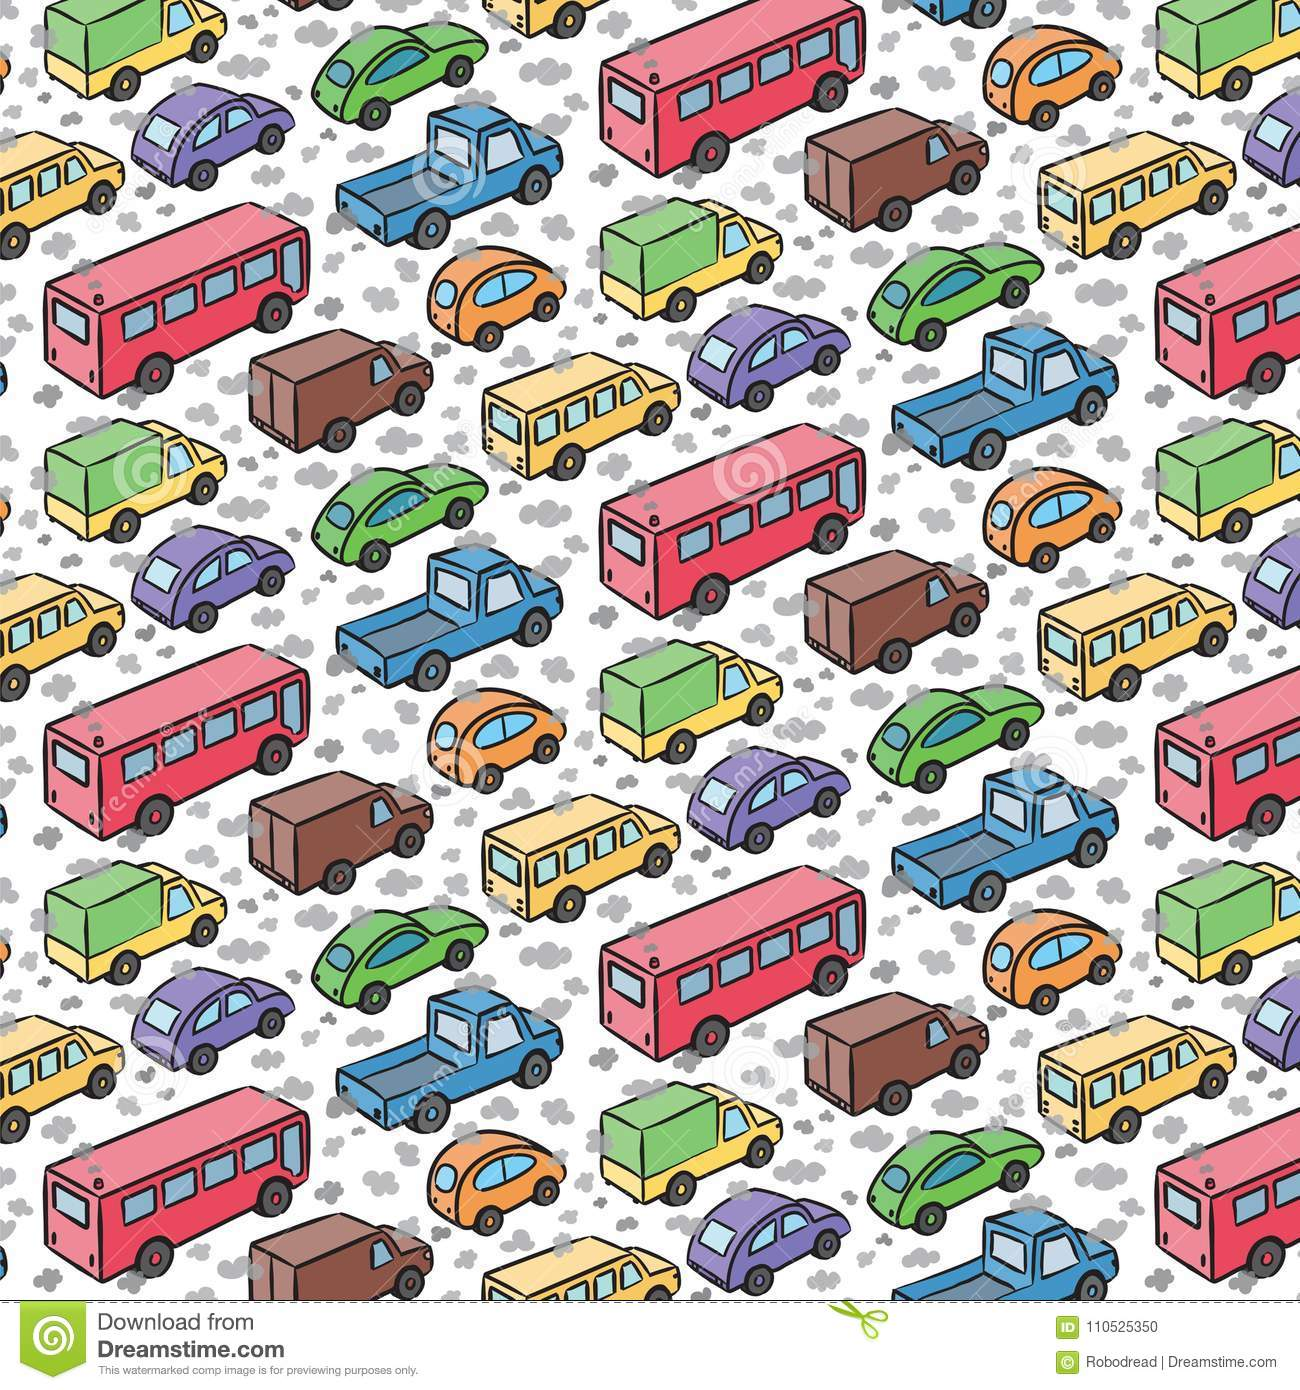 Repetitive pattern with transport cars